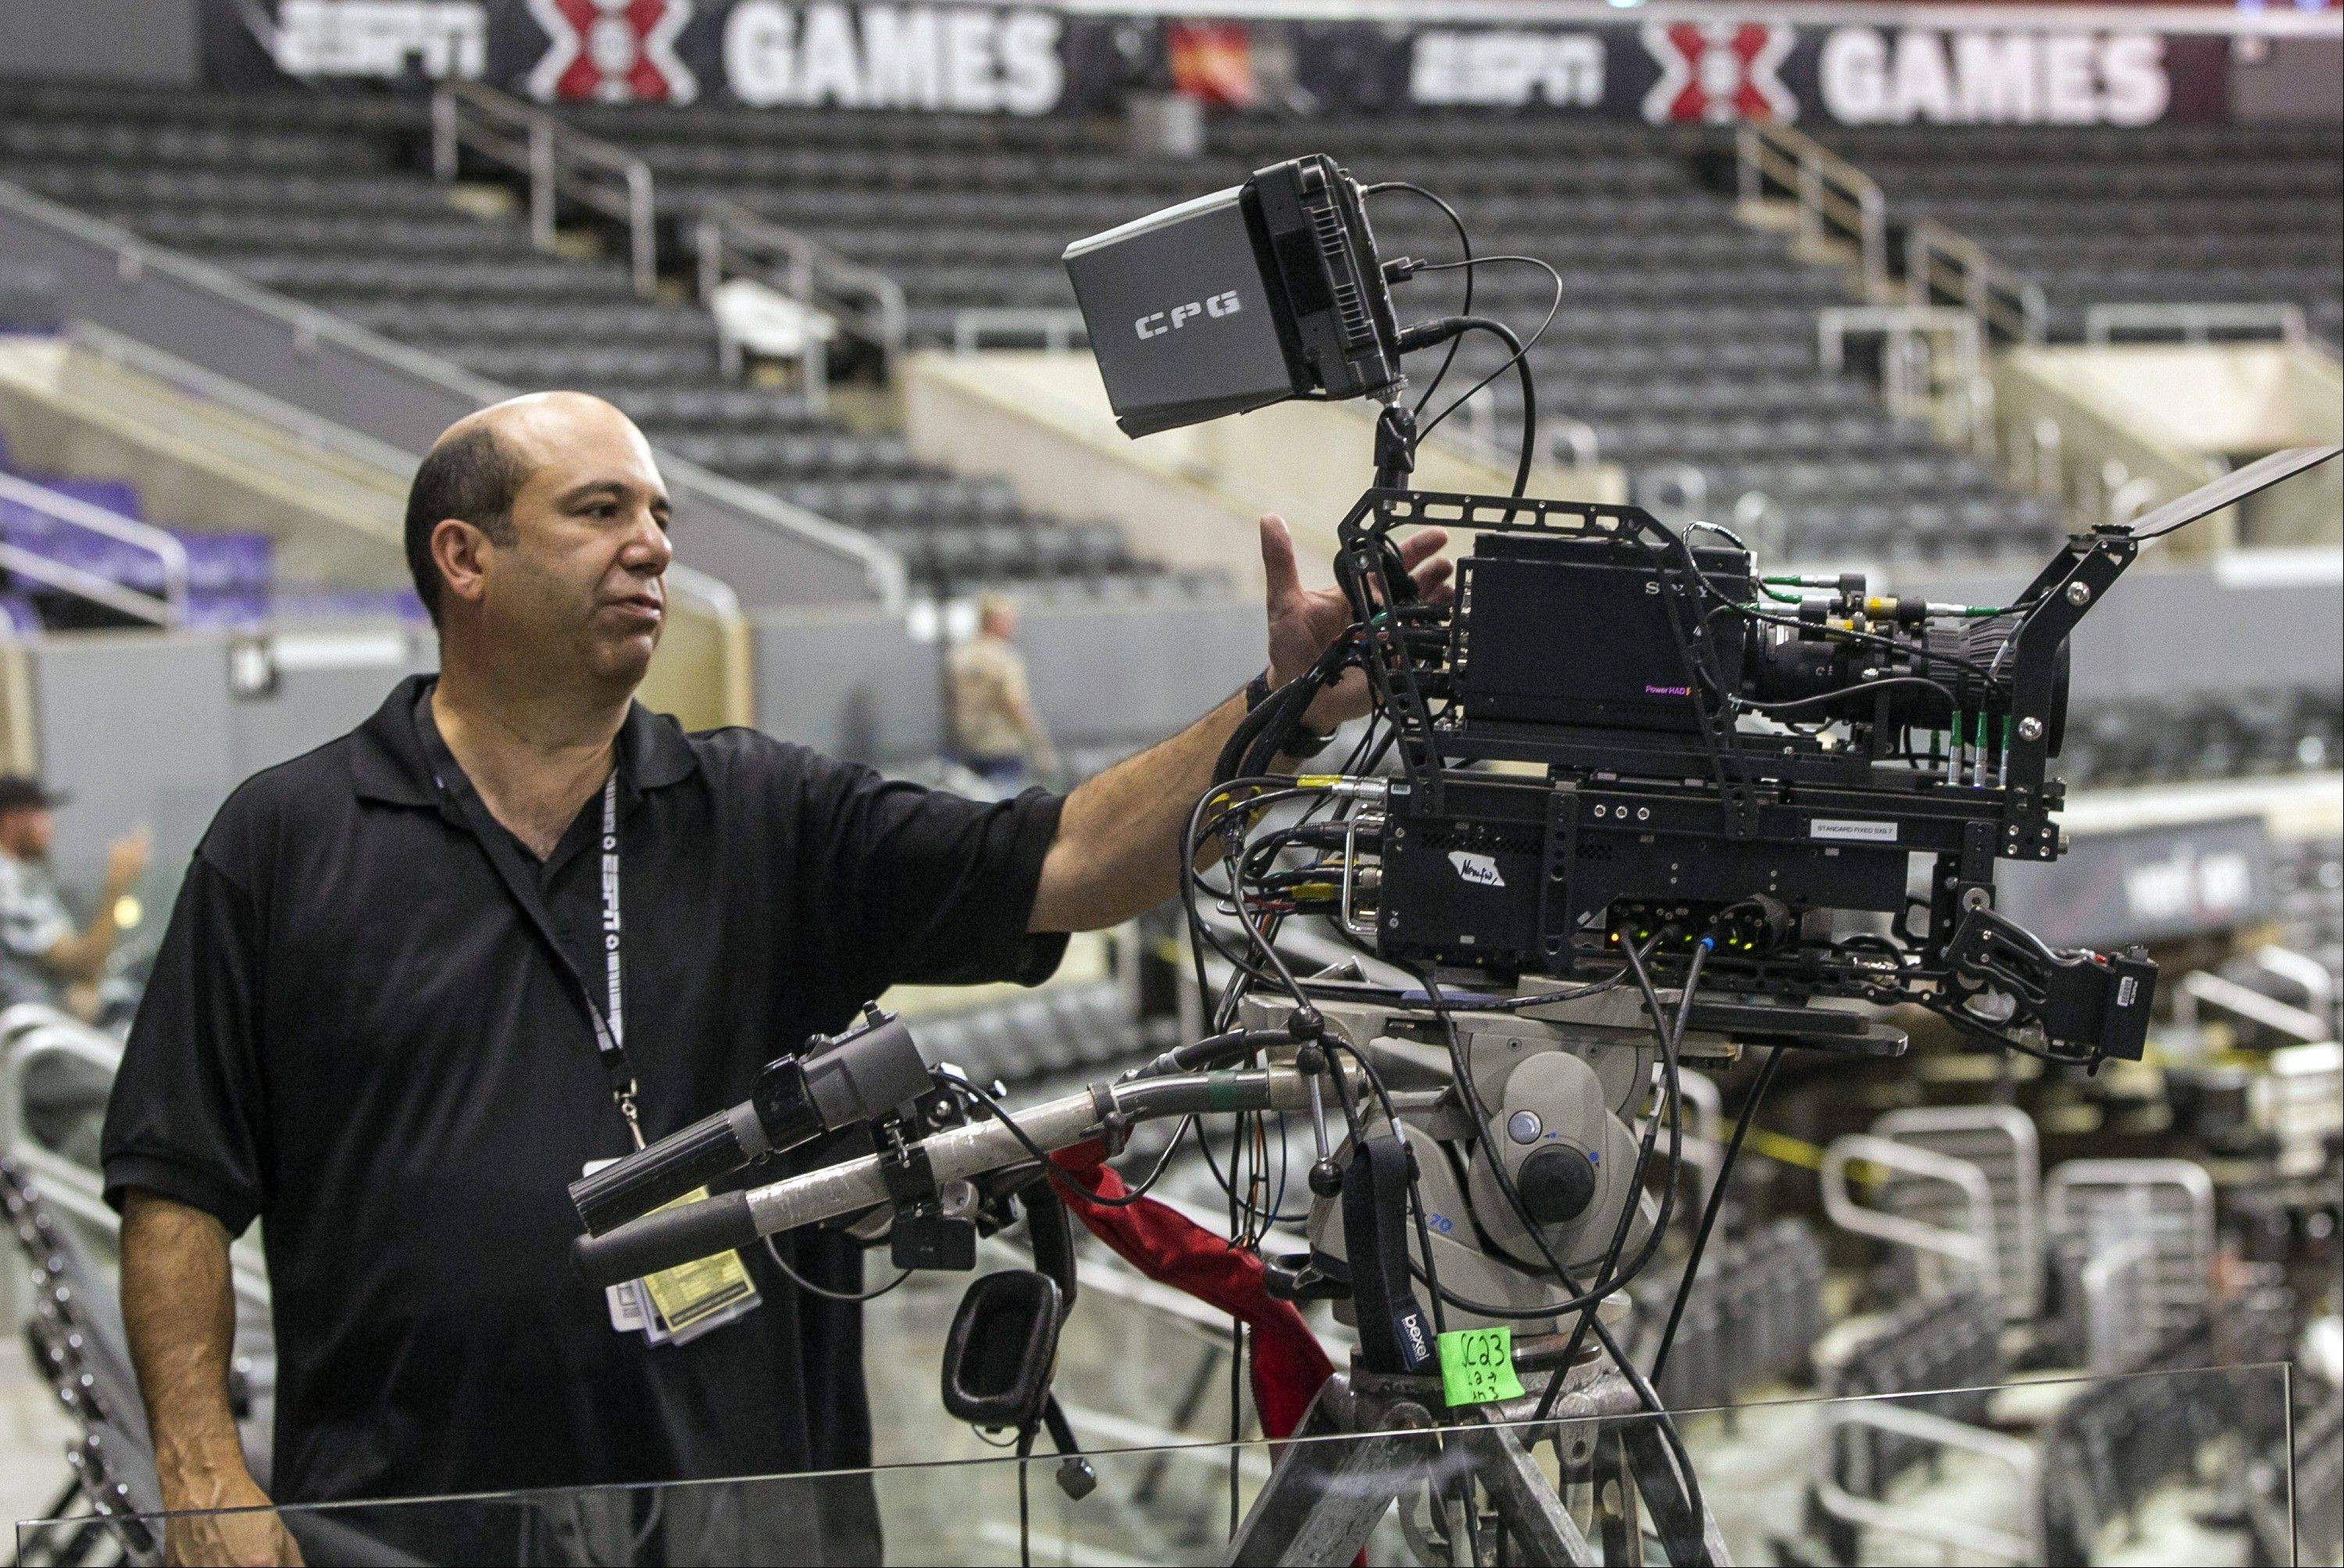 ESPN coordinating producer Phil Orlins shows a 3-D camera set up used by ESPN 3-D Network coverage at the ESPN X-Games held at the Staples Center in Los Angeles. Only 2 percent of TVs in American homes were able to show 3-D last year, according to IHS Screen Digest. That�s about 6.9 million sets out of 331 million installed.